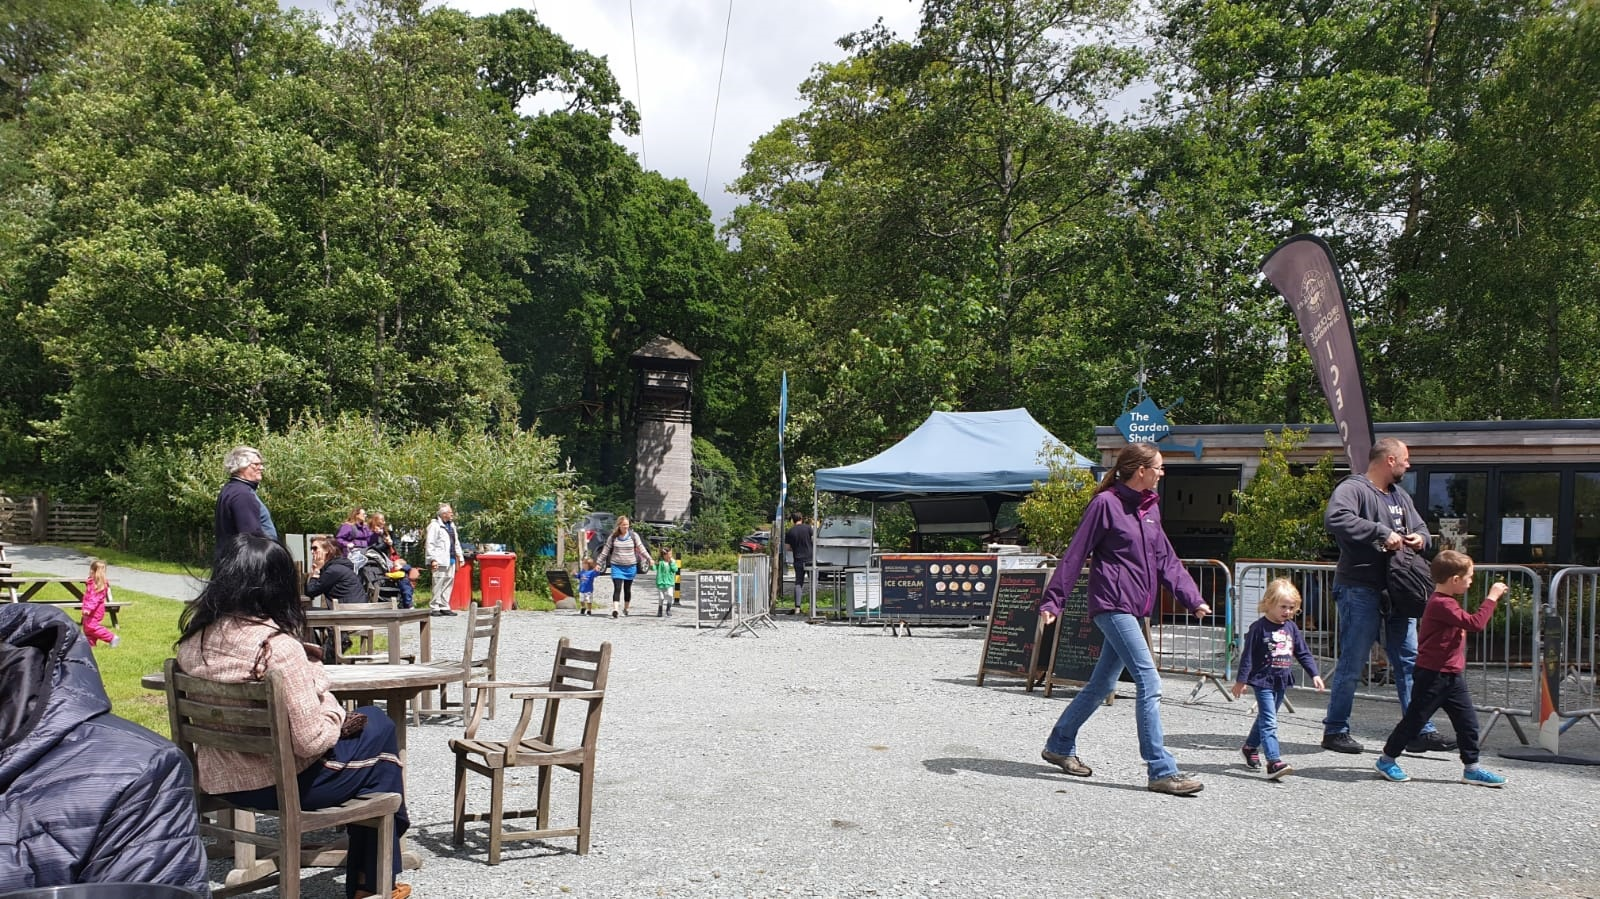 Families enjoyed the range of activities that were on offer at Brockhole this weekend.